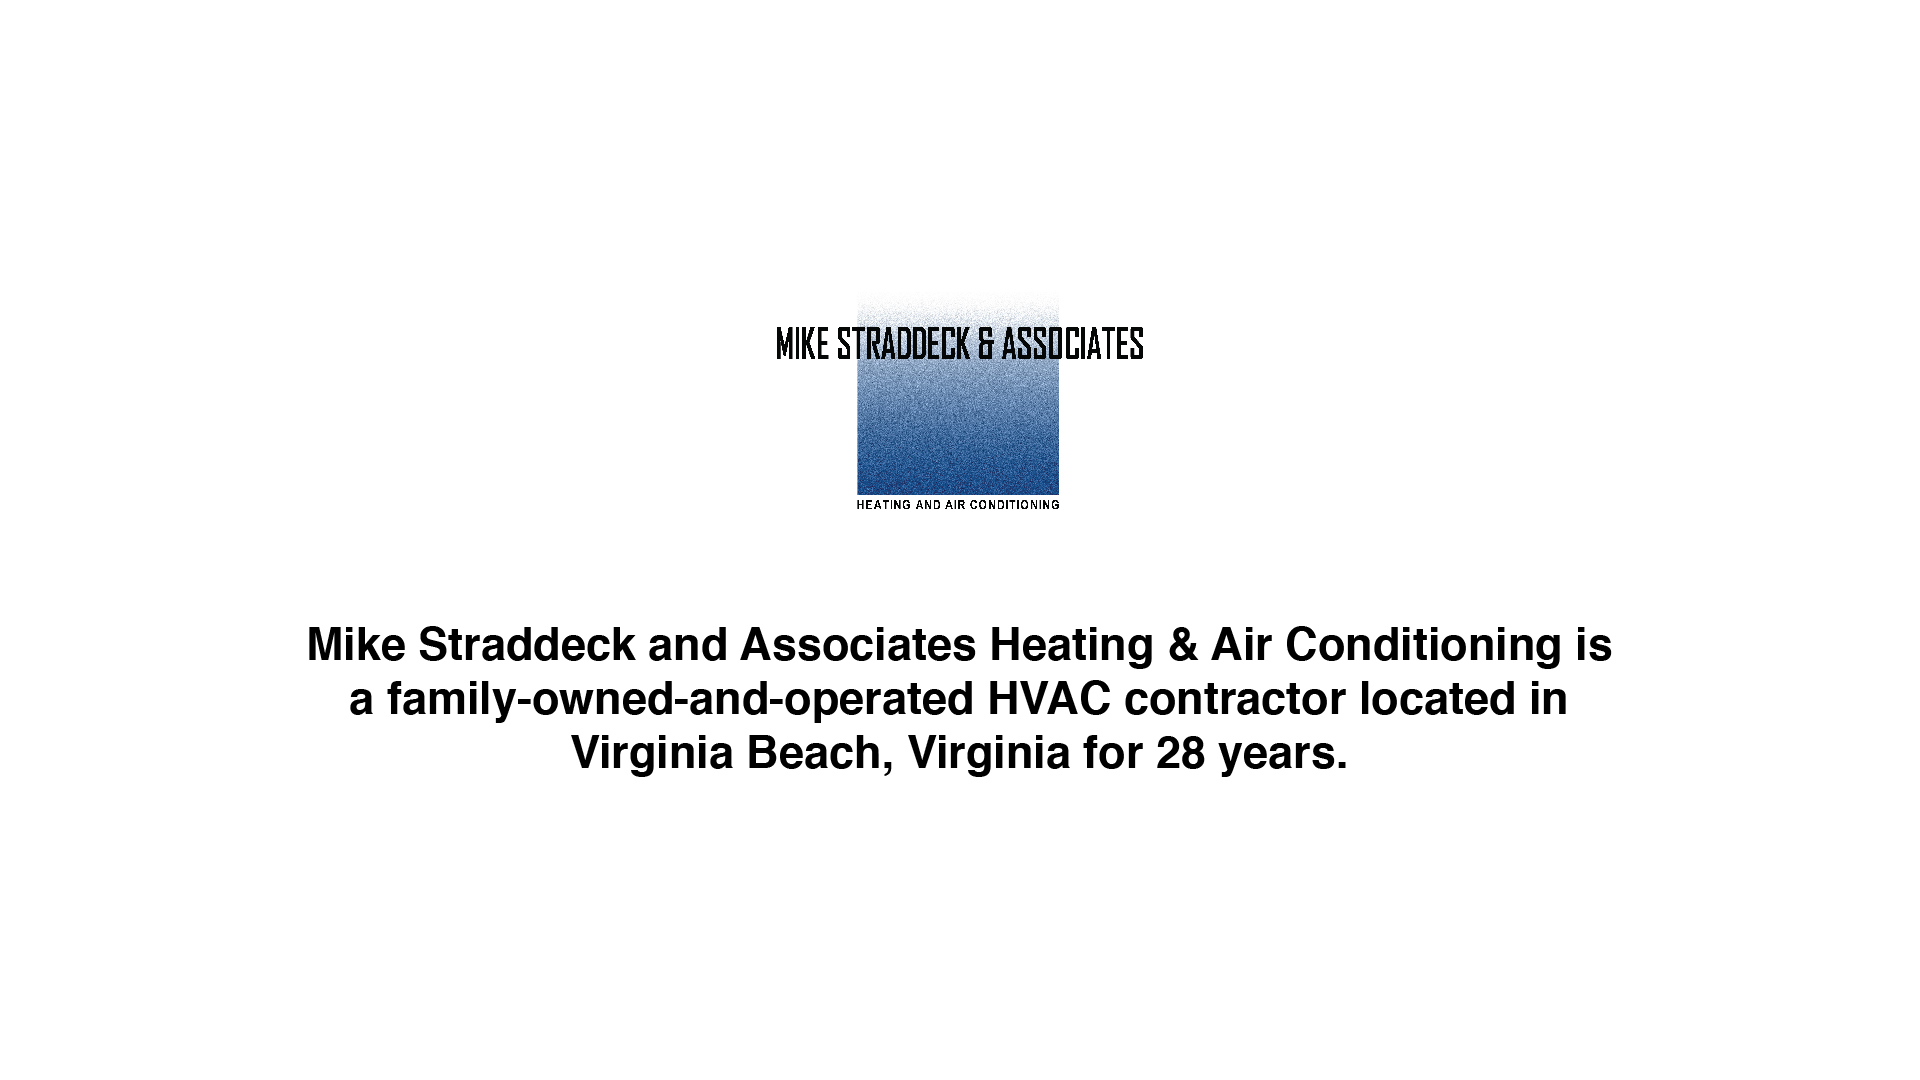 Mike Straddeck and Associates Heating & Air Conditioning is a family-owned-and-operated HVAC contractor located in Virginia Beach, Virginia for 28 years.